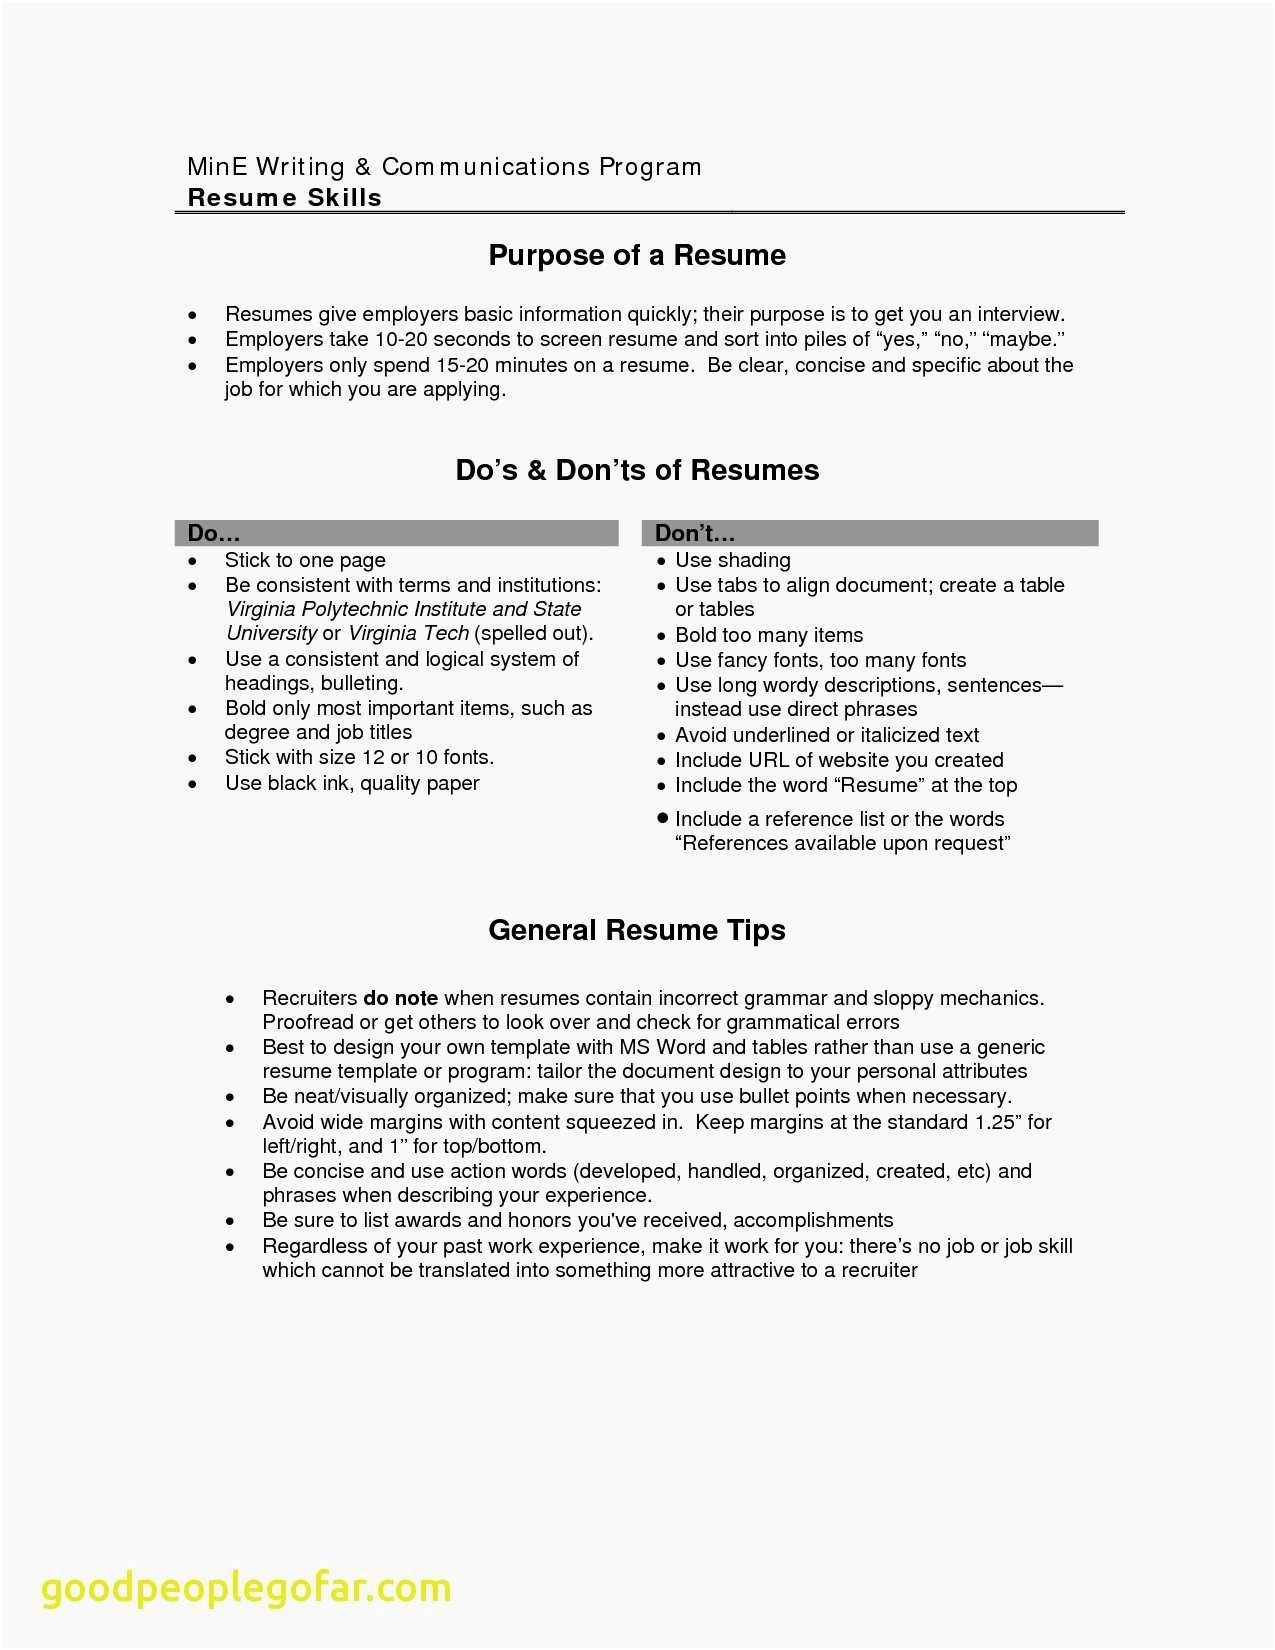 What Should Be Included In A Resume - What Should A Resume Include Unique Skills to Put A Resume New